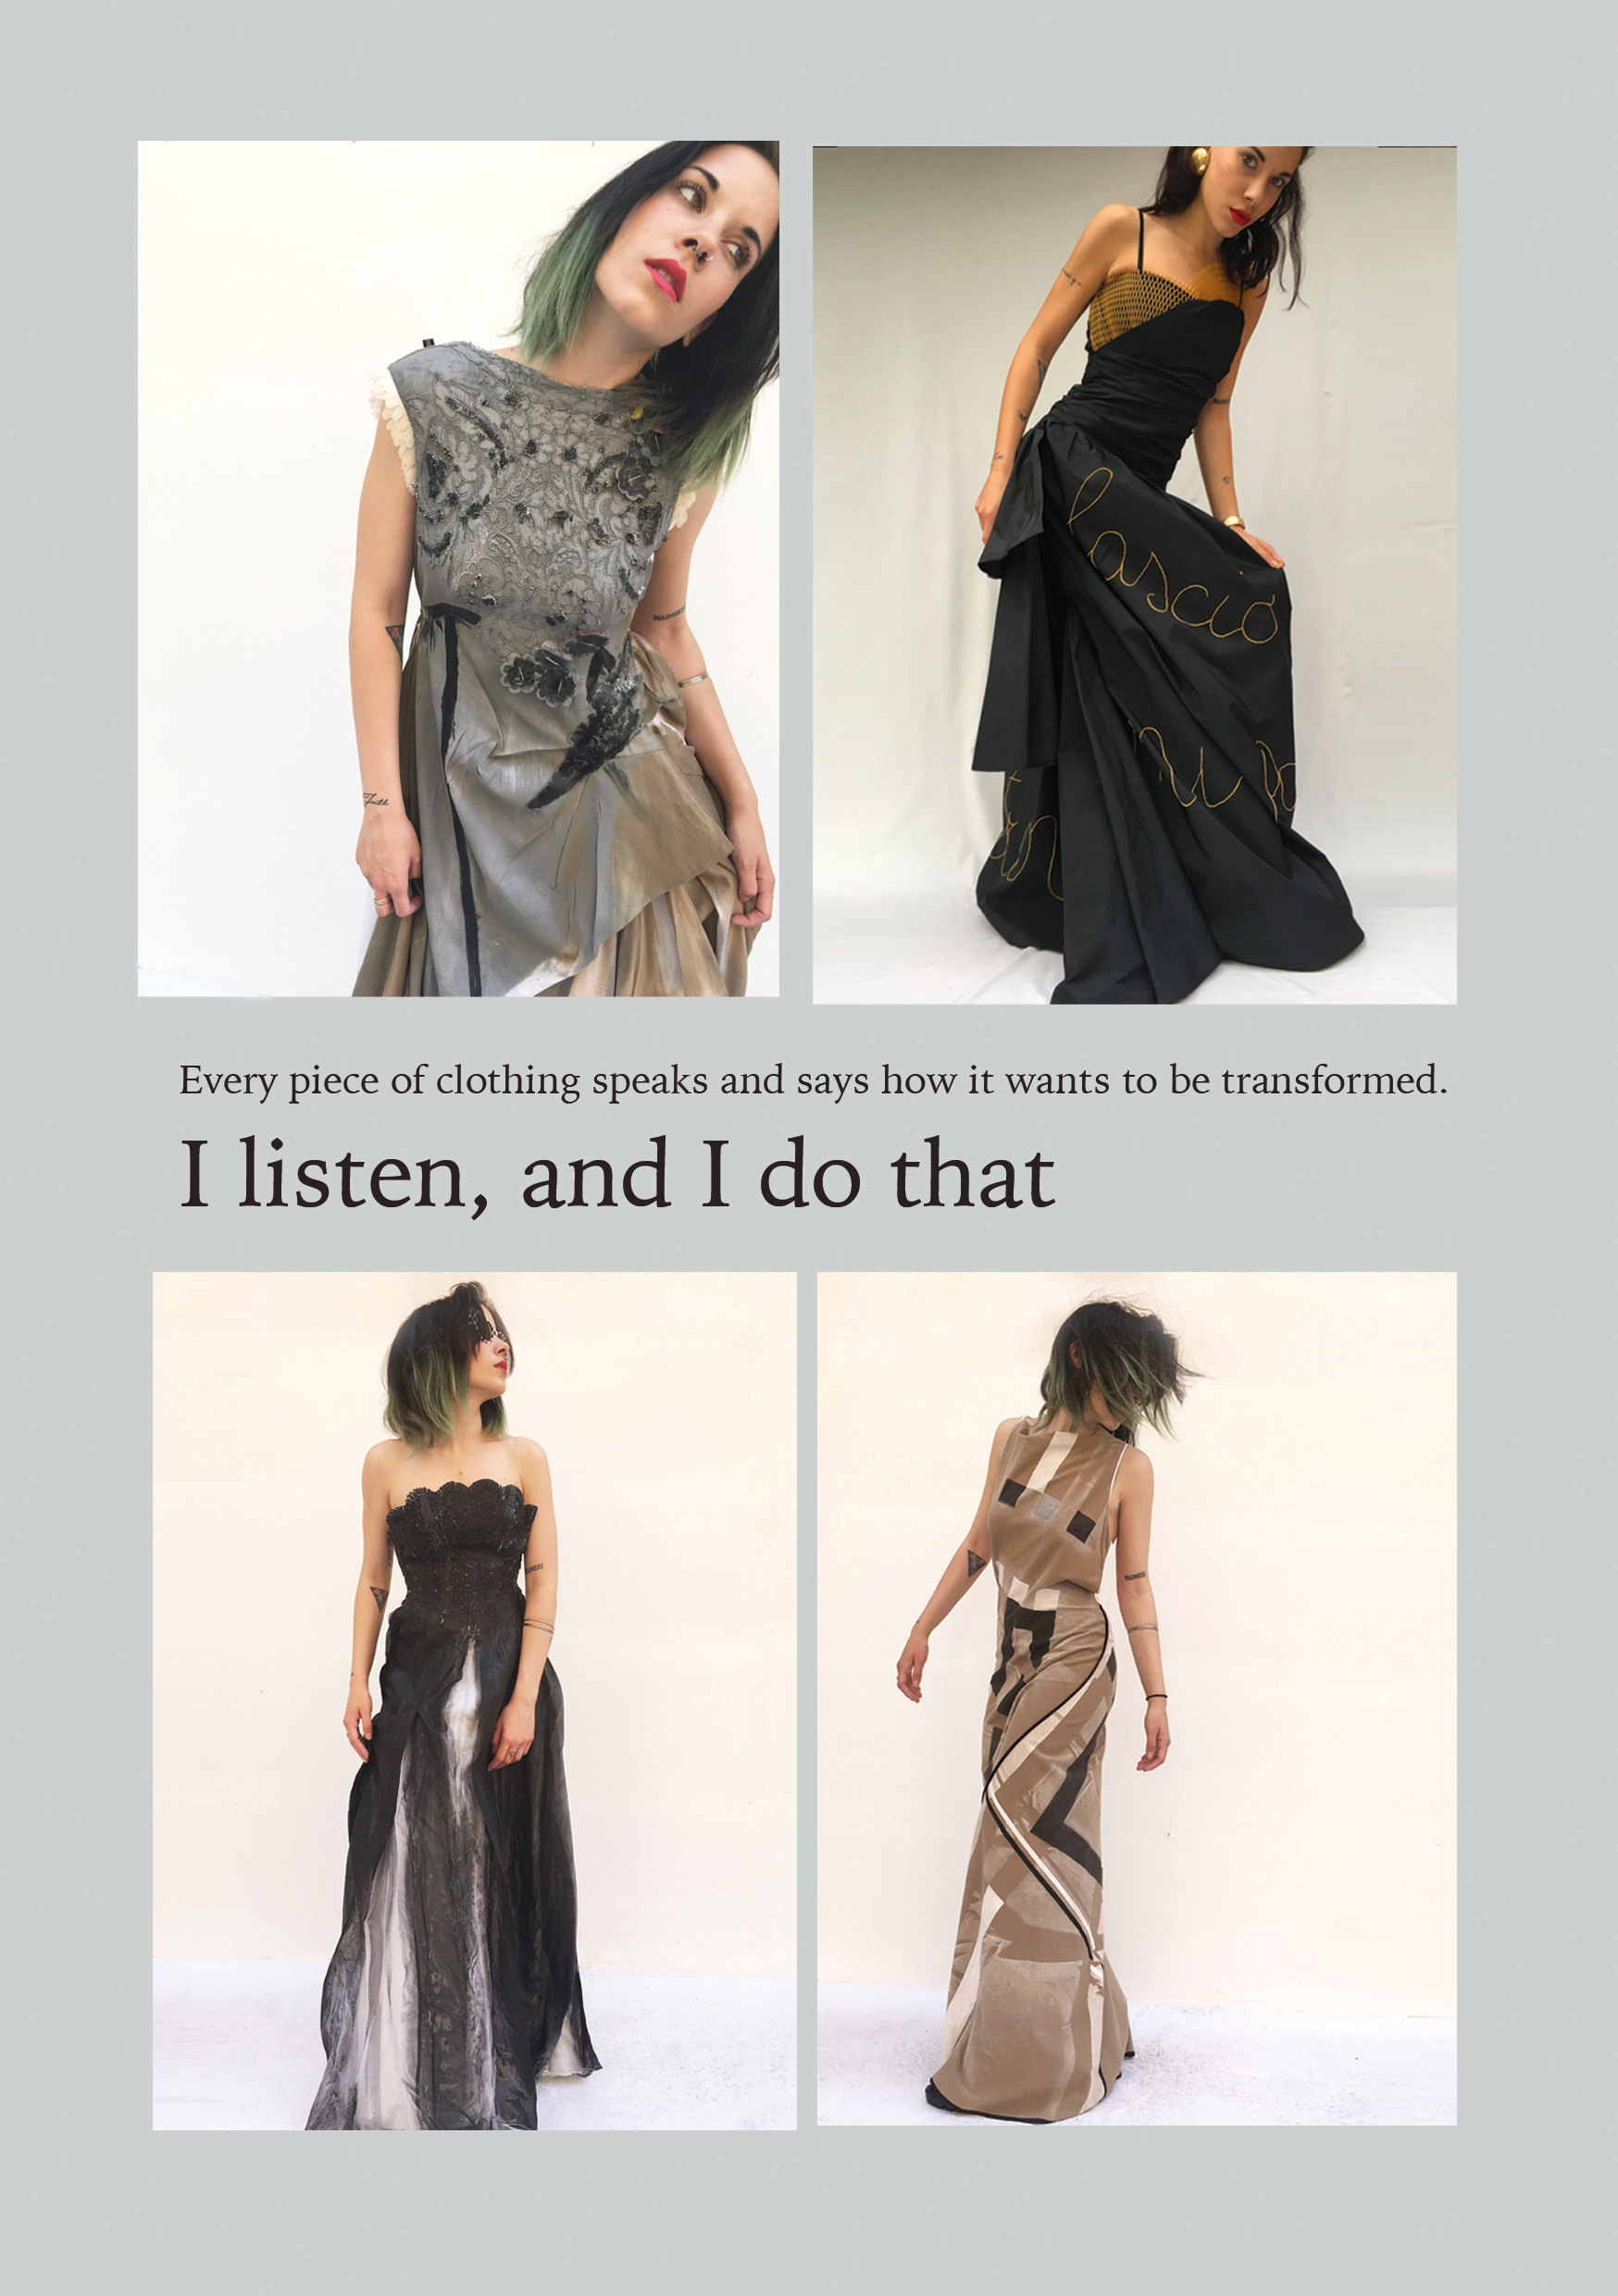 Lola Darling Every piece of clothing says how it wants to be transformed. The brand book